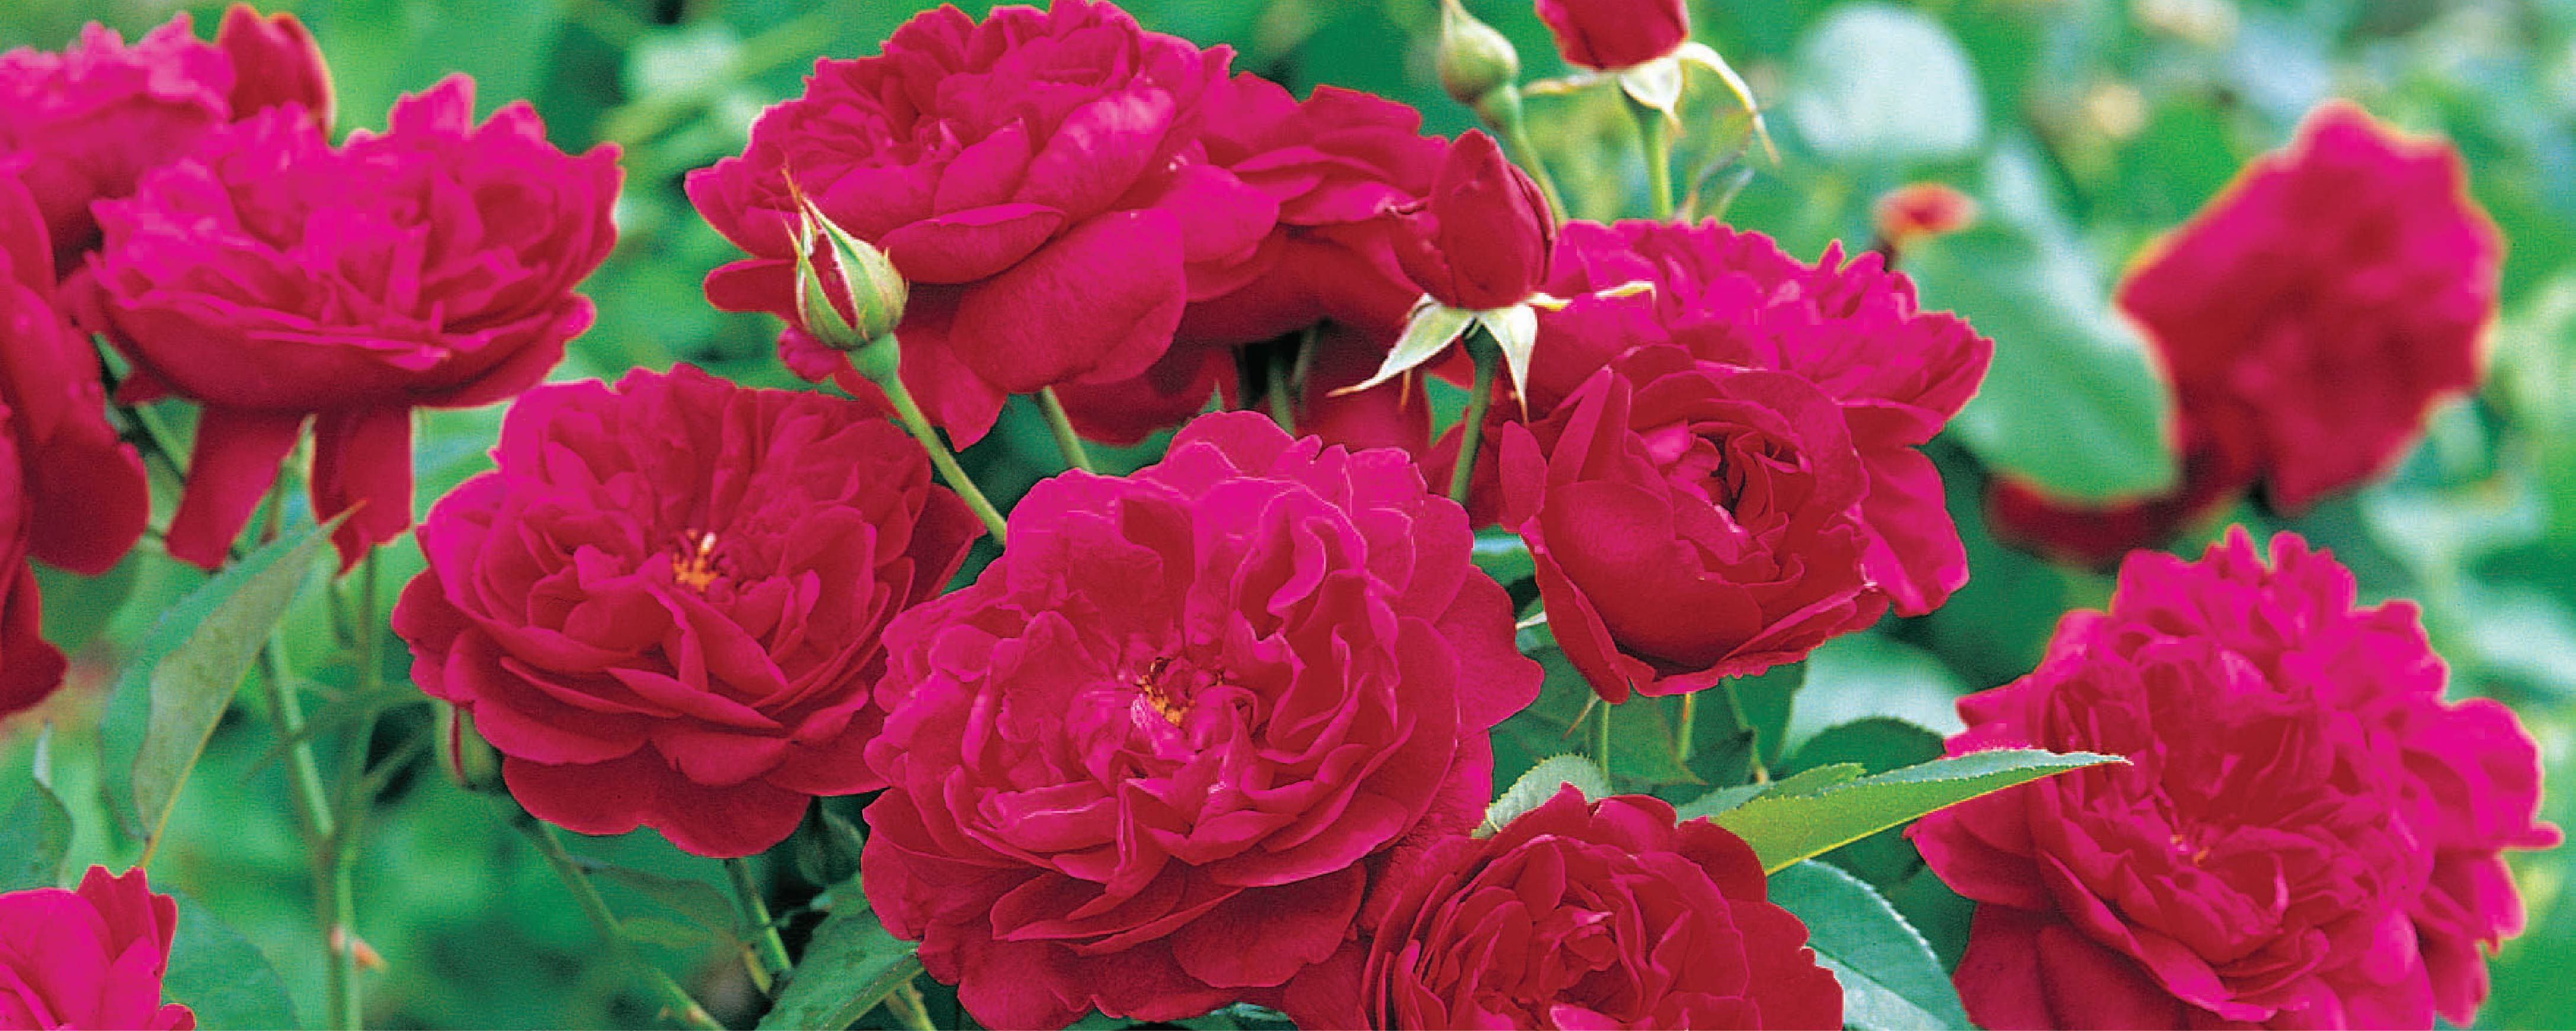 Get Your Roses Ready for an Autumn Blooming